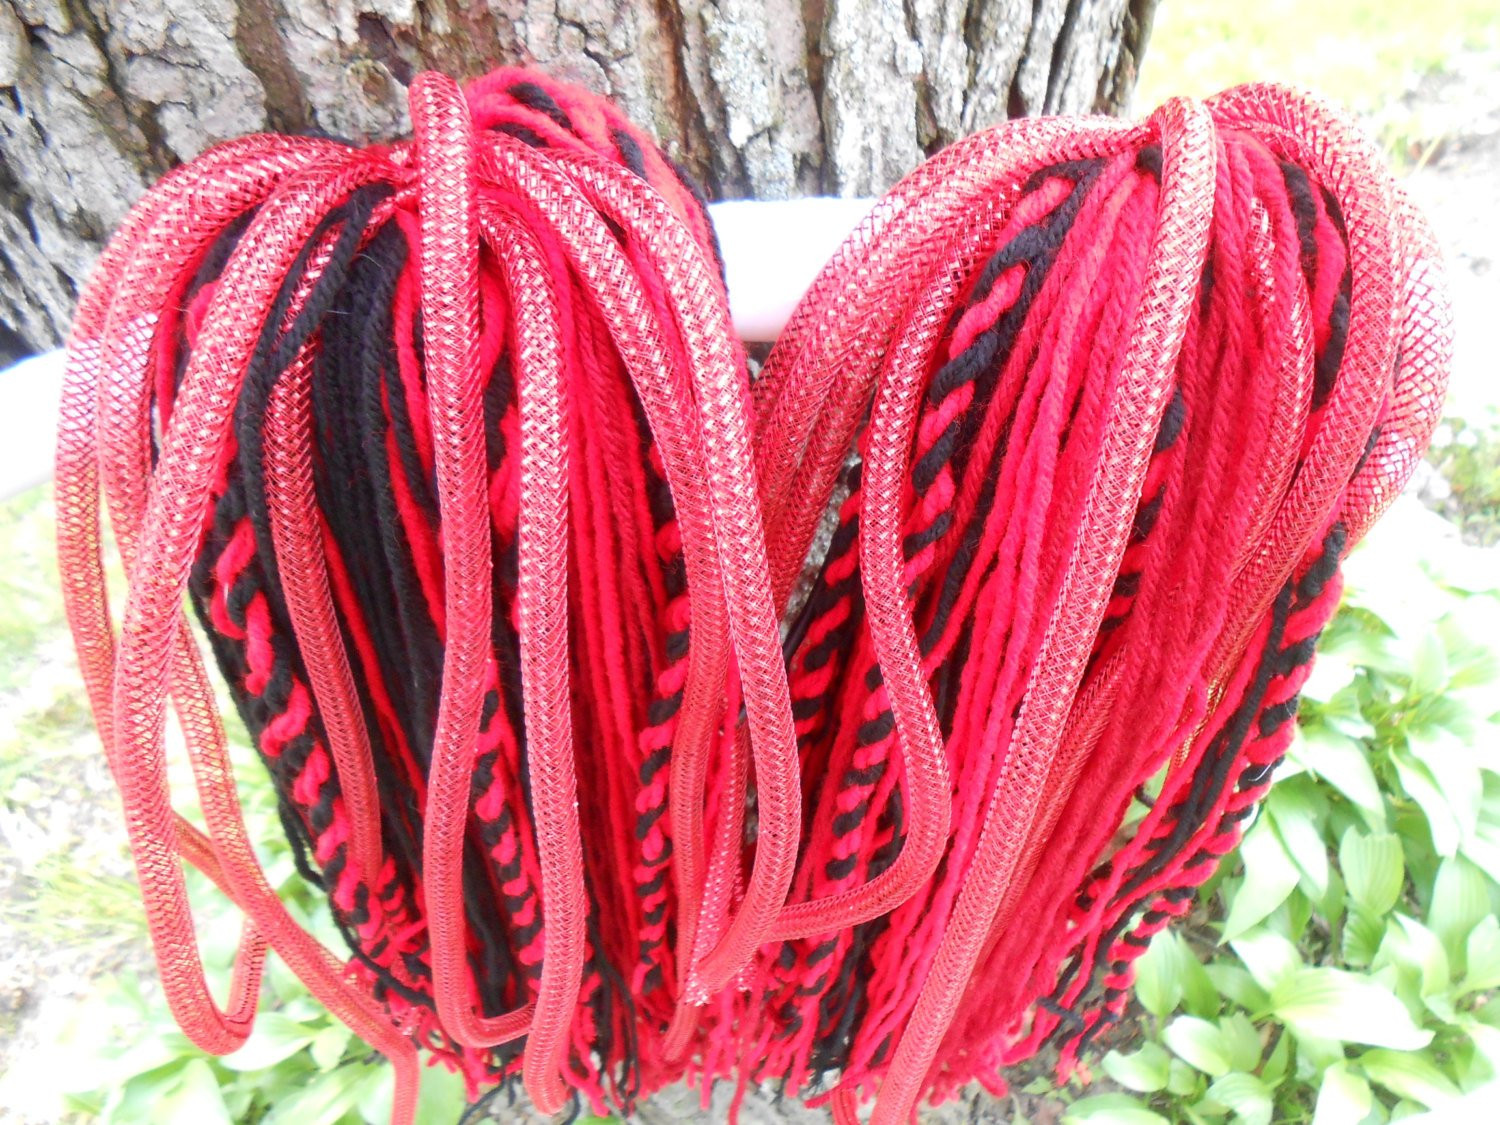 Red and Black Yarn Fresh Red and Black Yarn Hair Falls with Red Cyberlox and Yarn Of Lovely 45 Images Red and Black Yarn